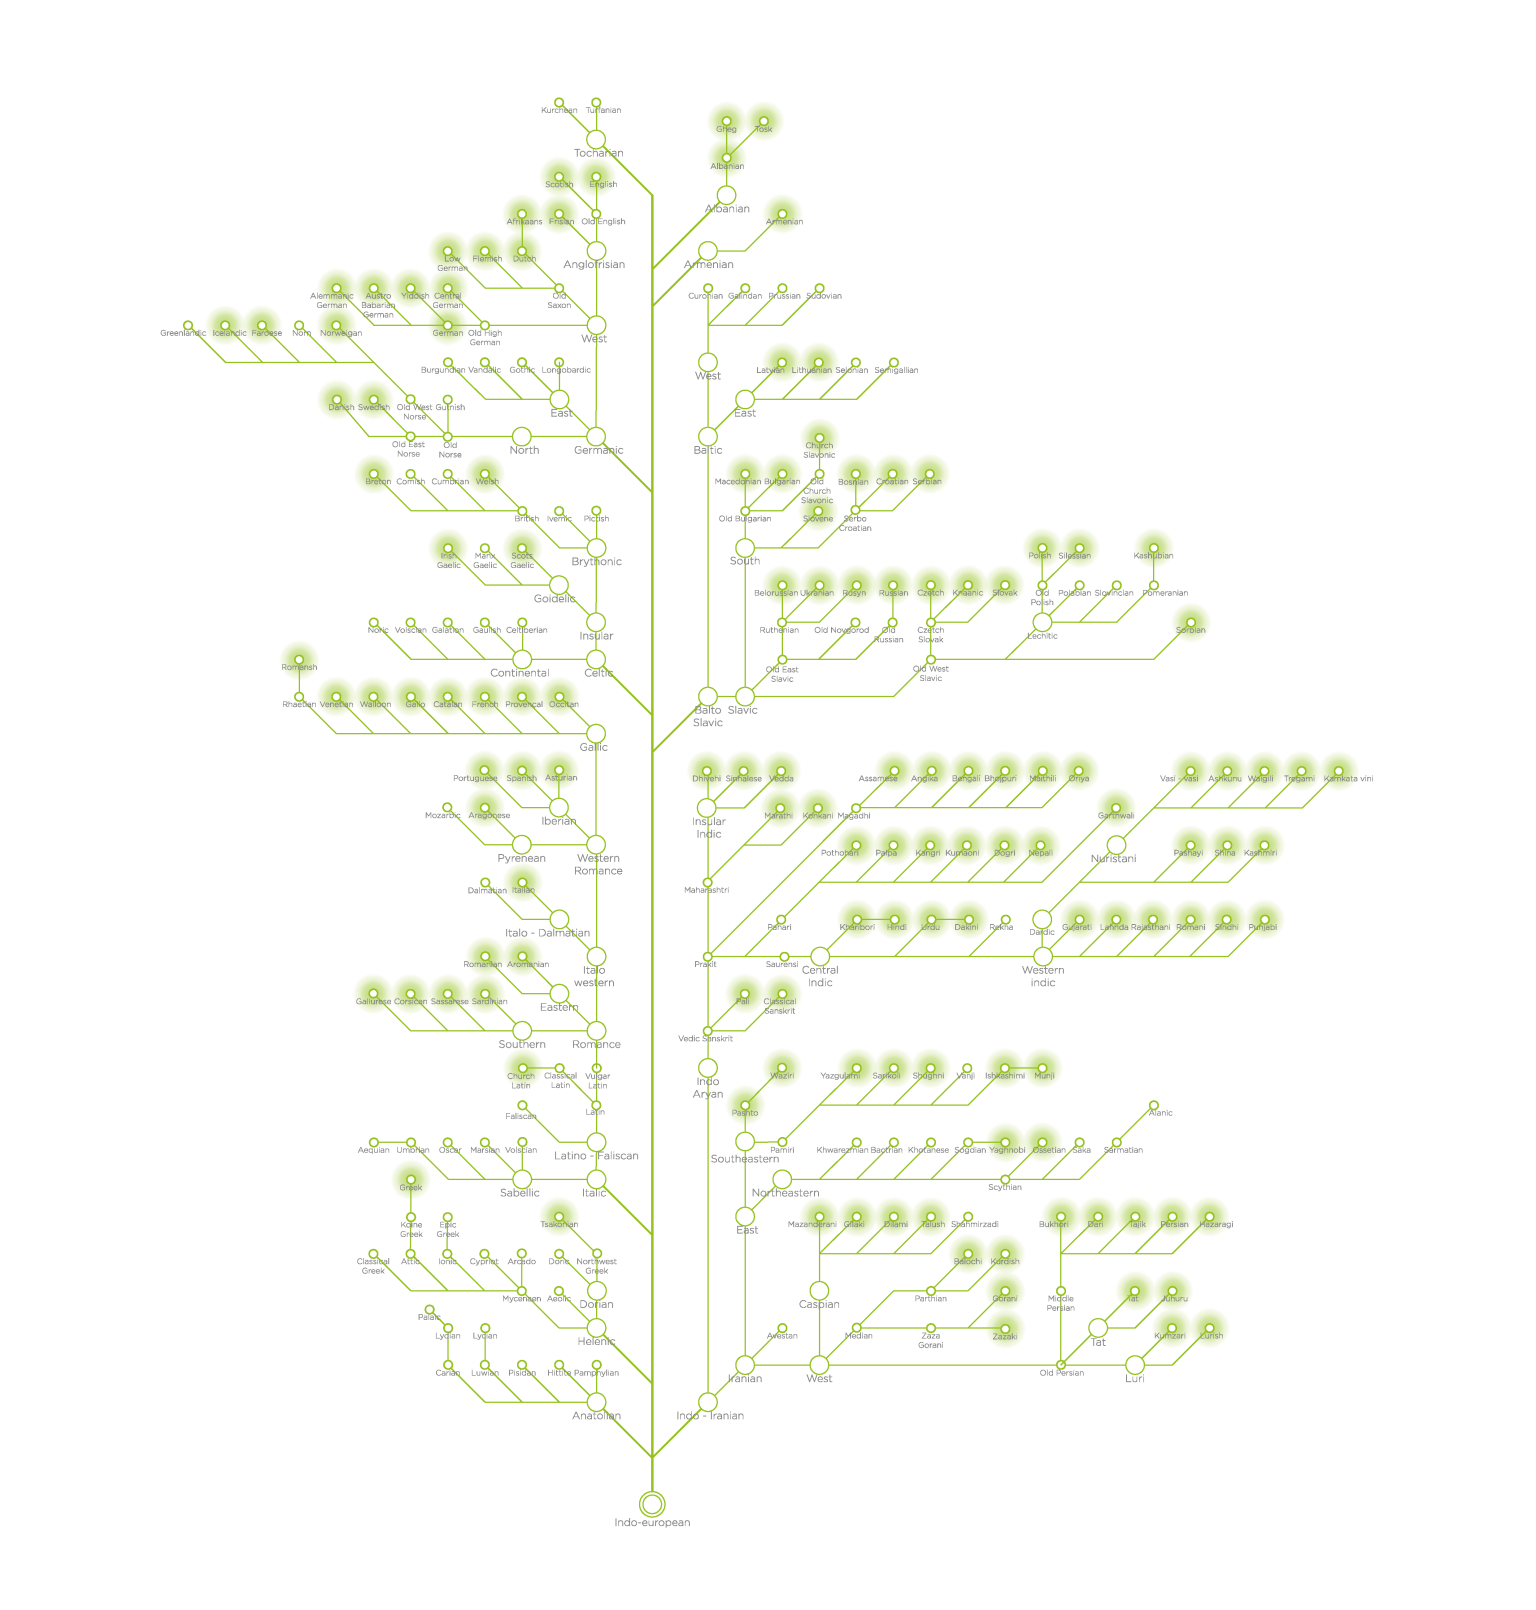 A tree map of languages